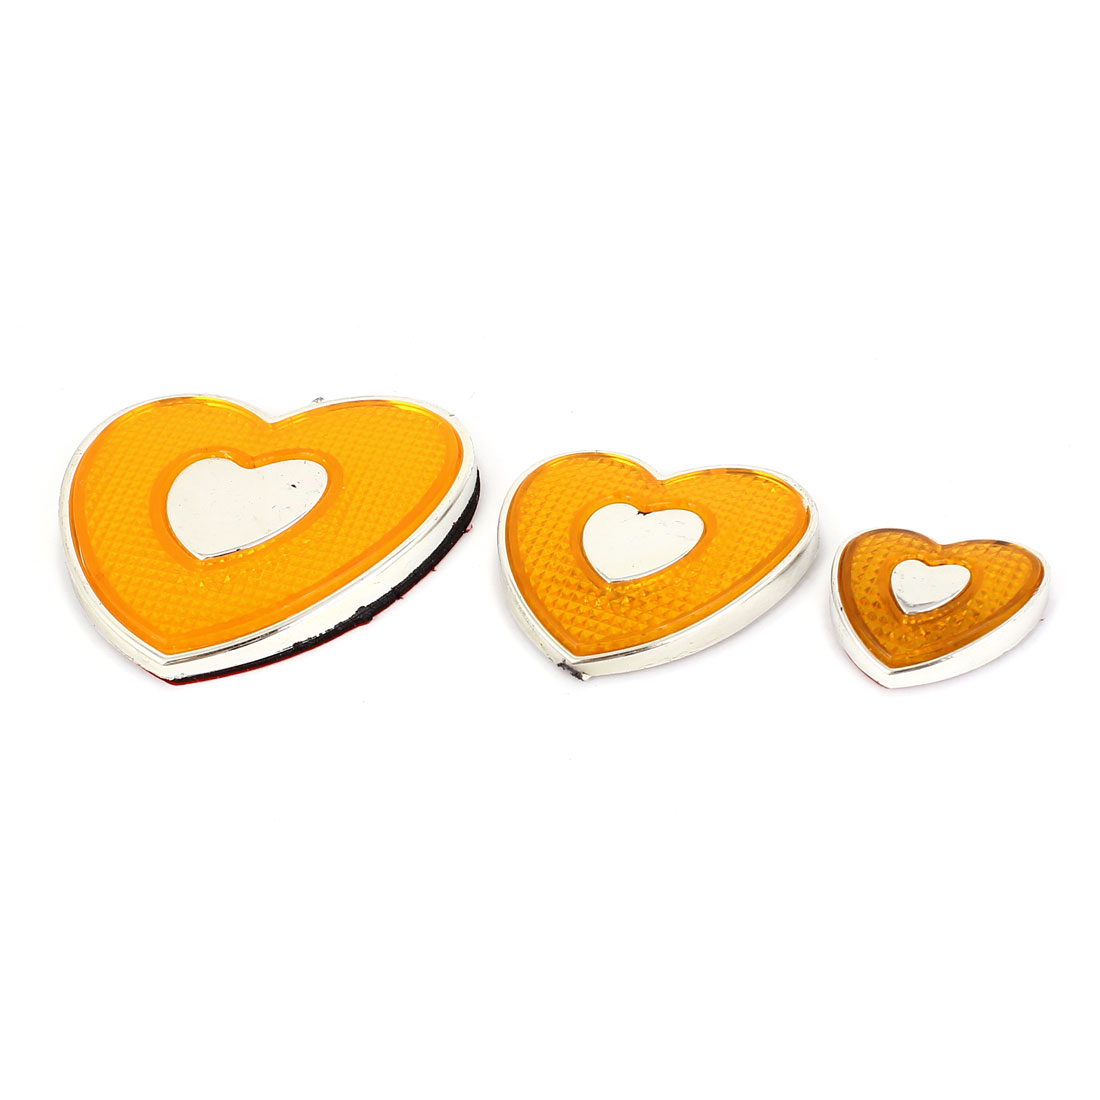 Yellow Heart Shaped Reflective Self-Adhesive Car Sticker Decal 3 in 1